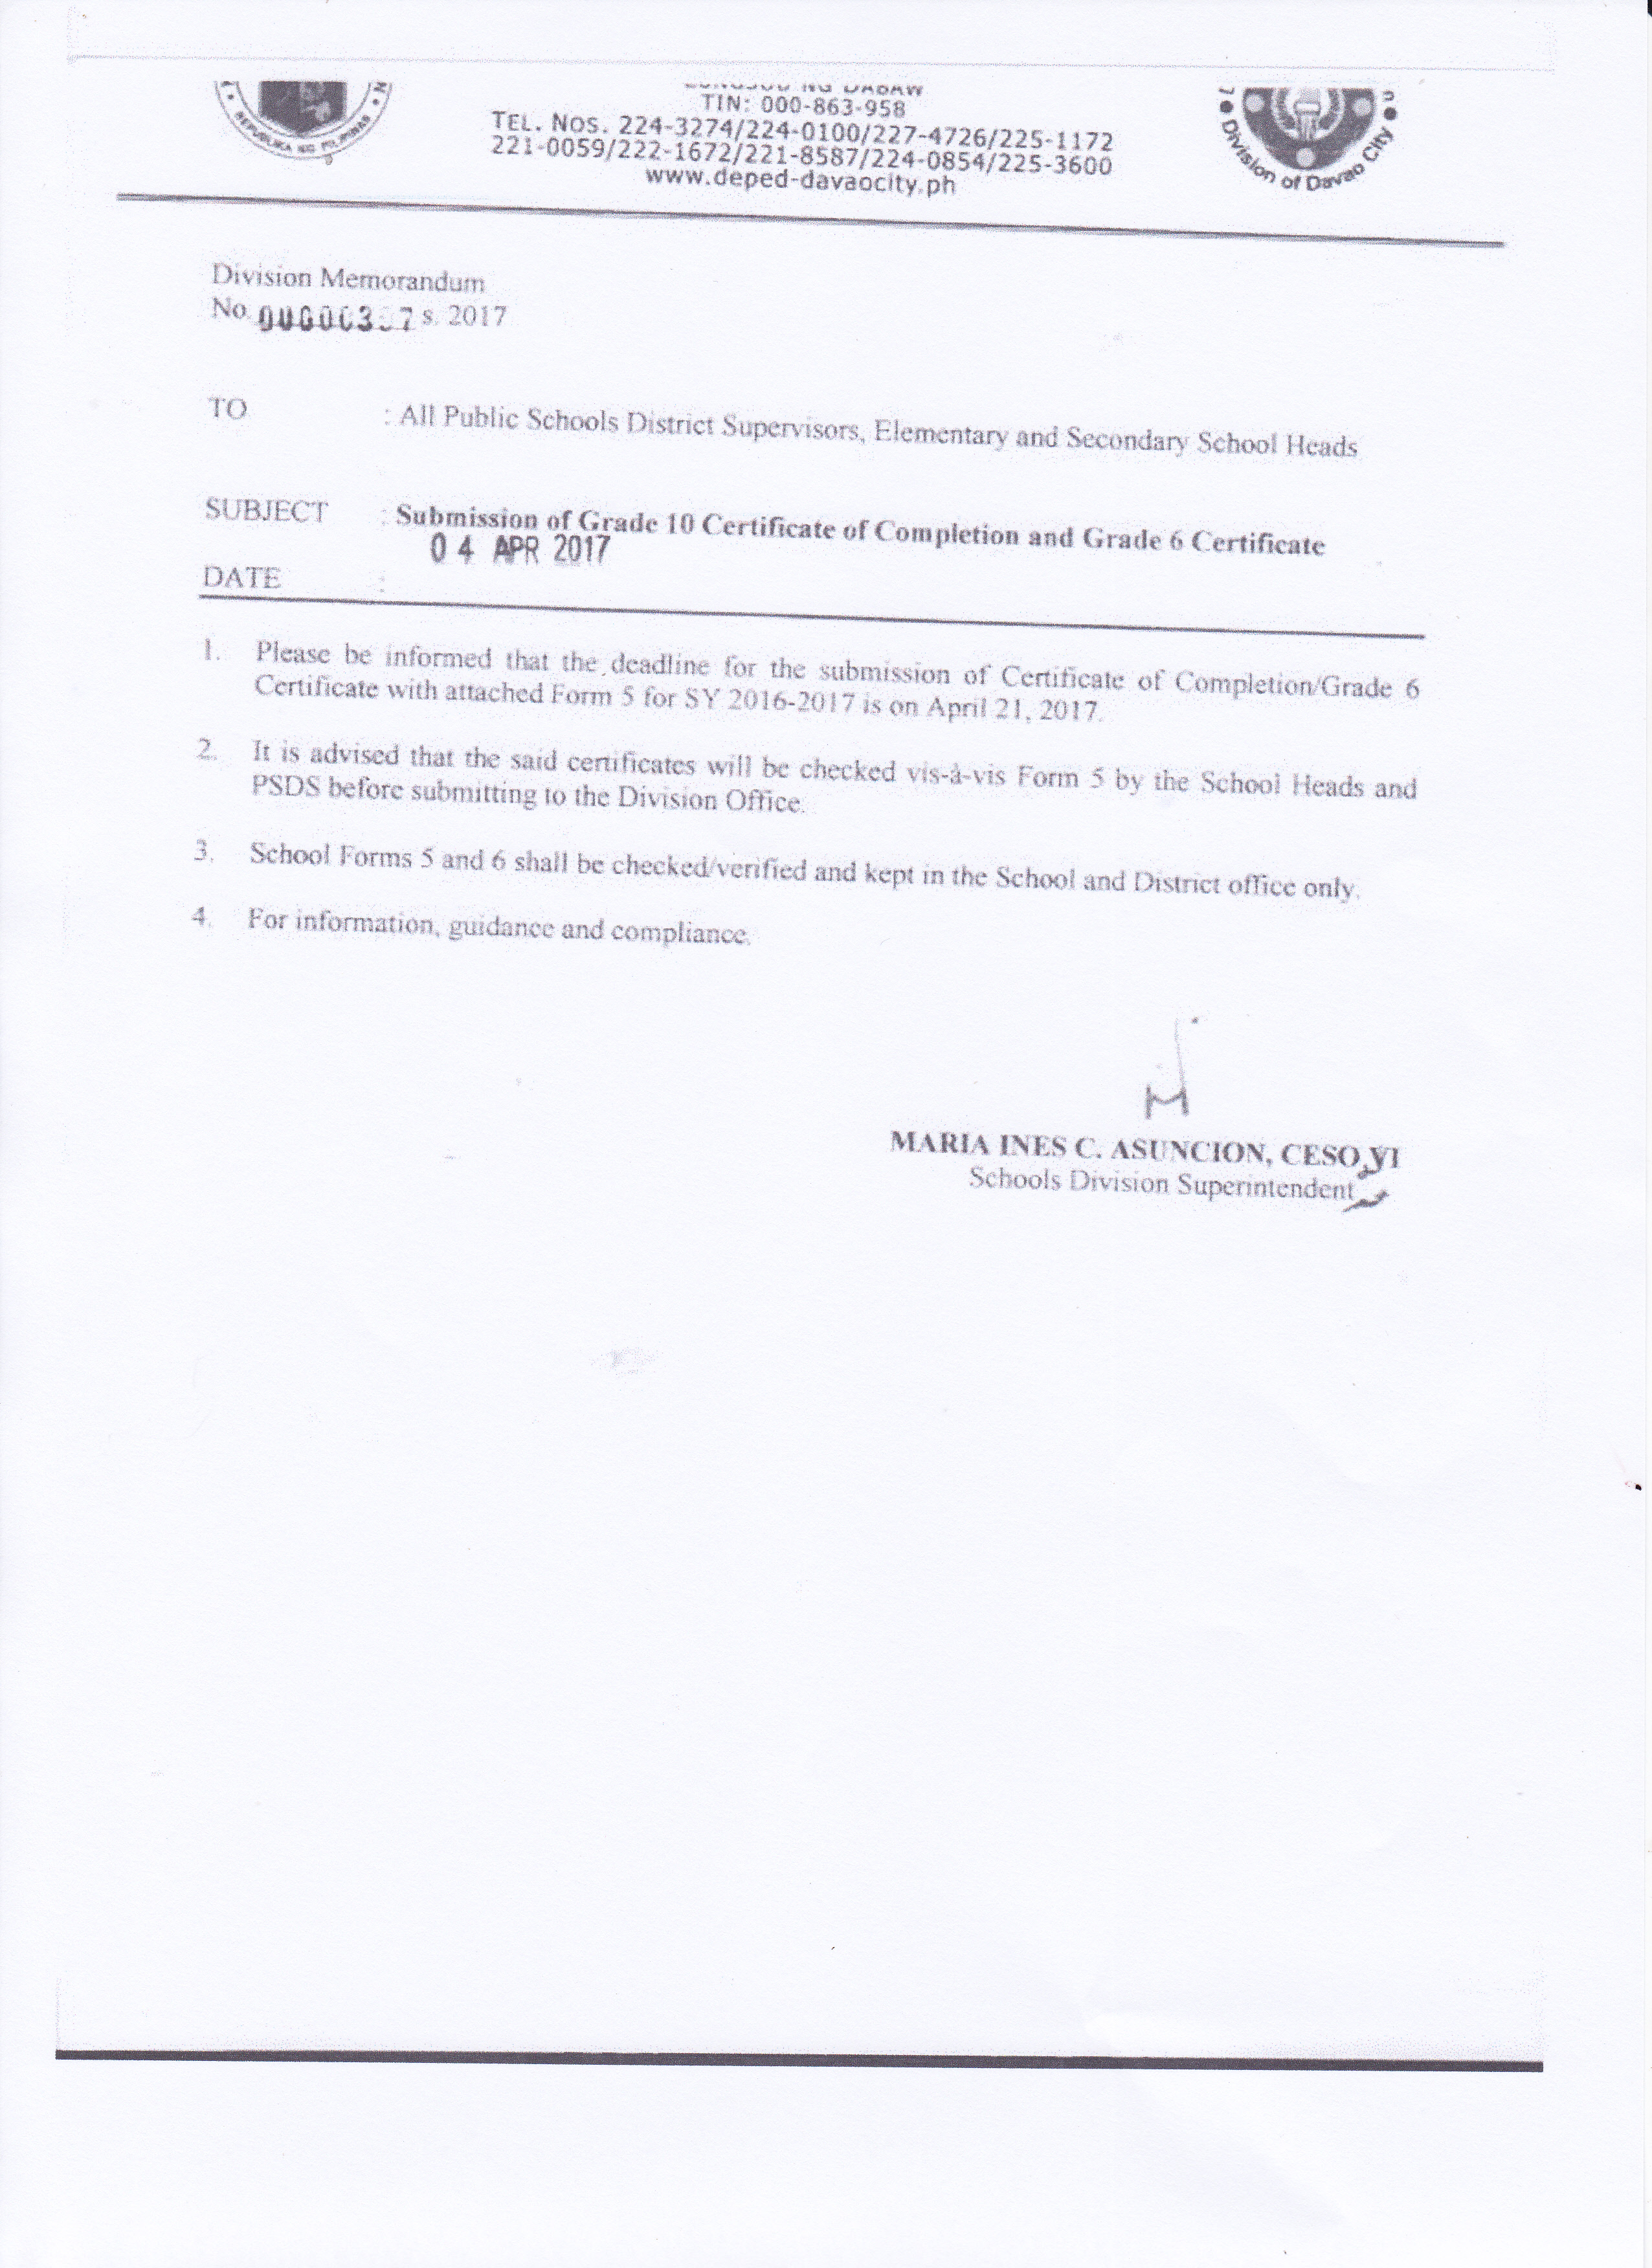 Submission of Grade 10 Certificate of Completion and Grade